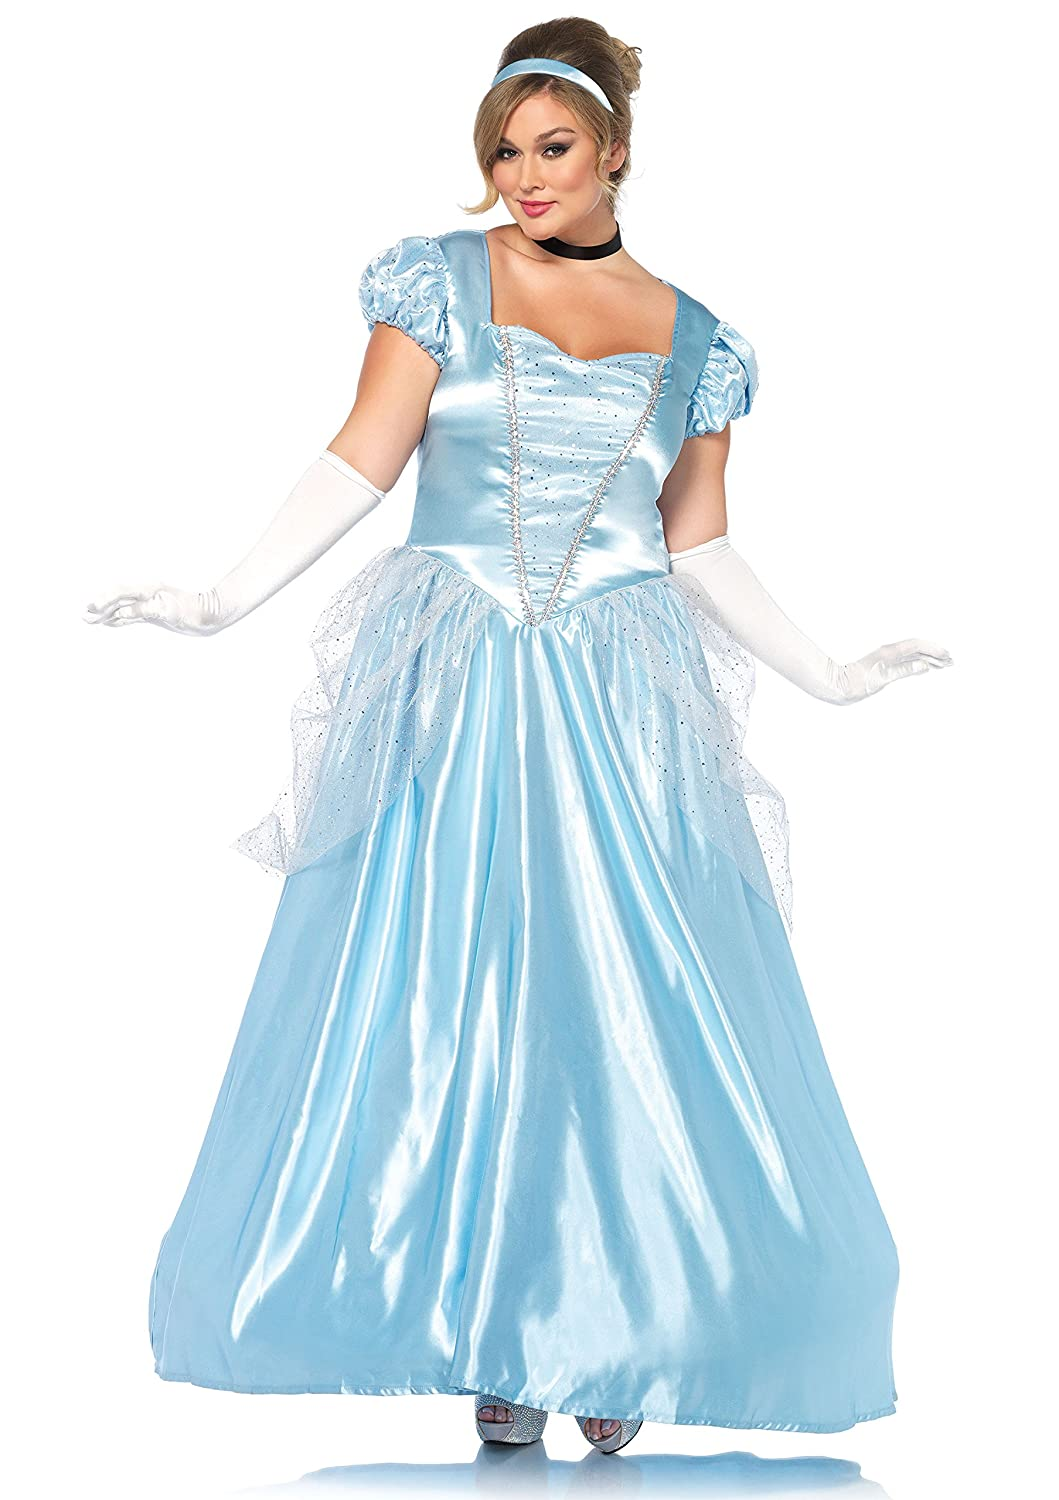 Leg Avenue Disney 3Pc. Classic Cinderella Costume